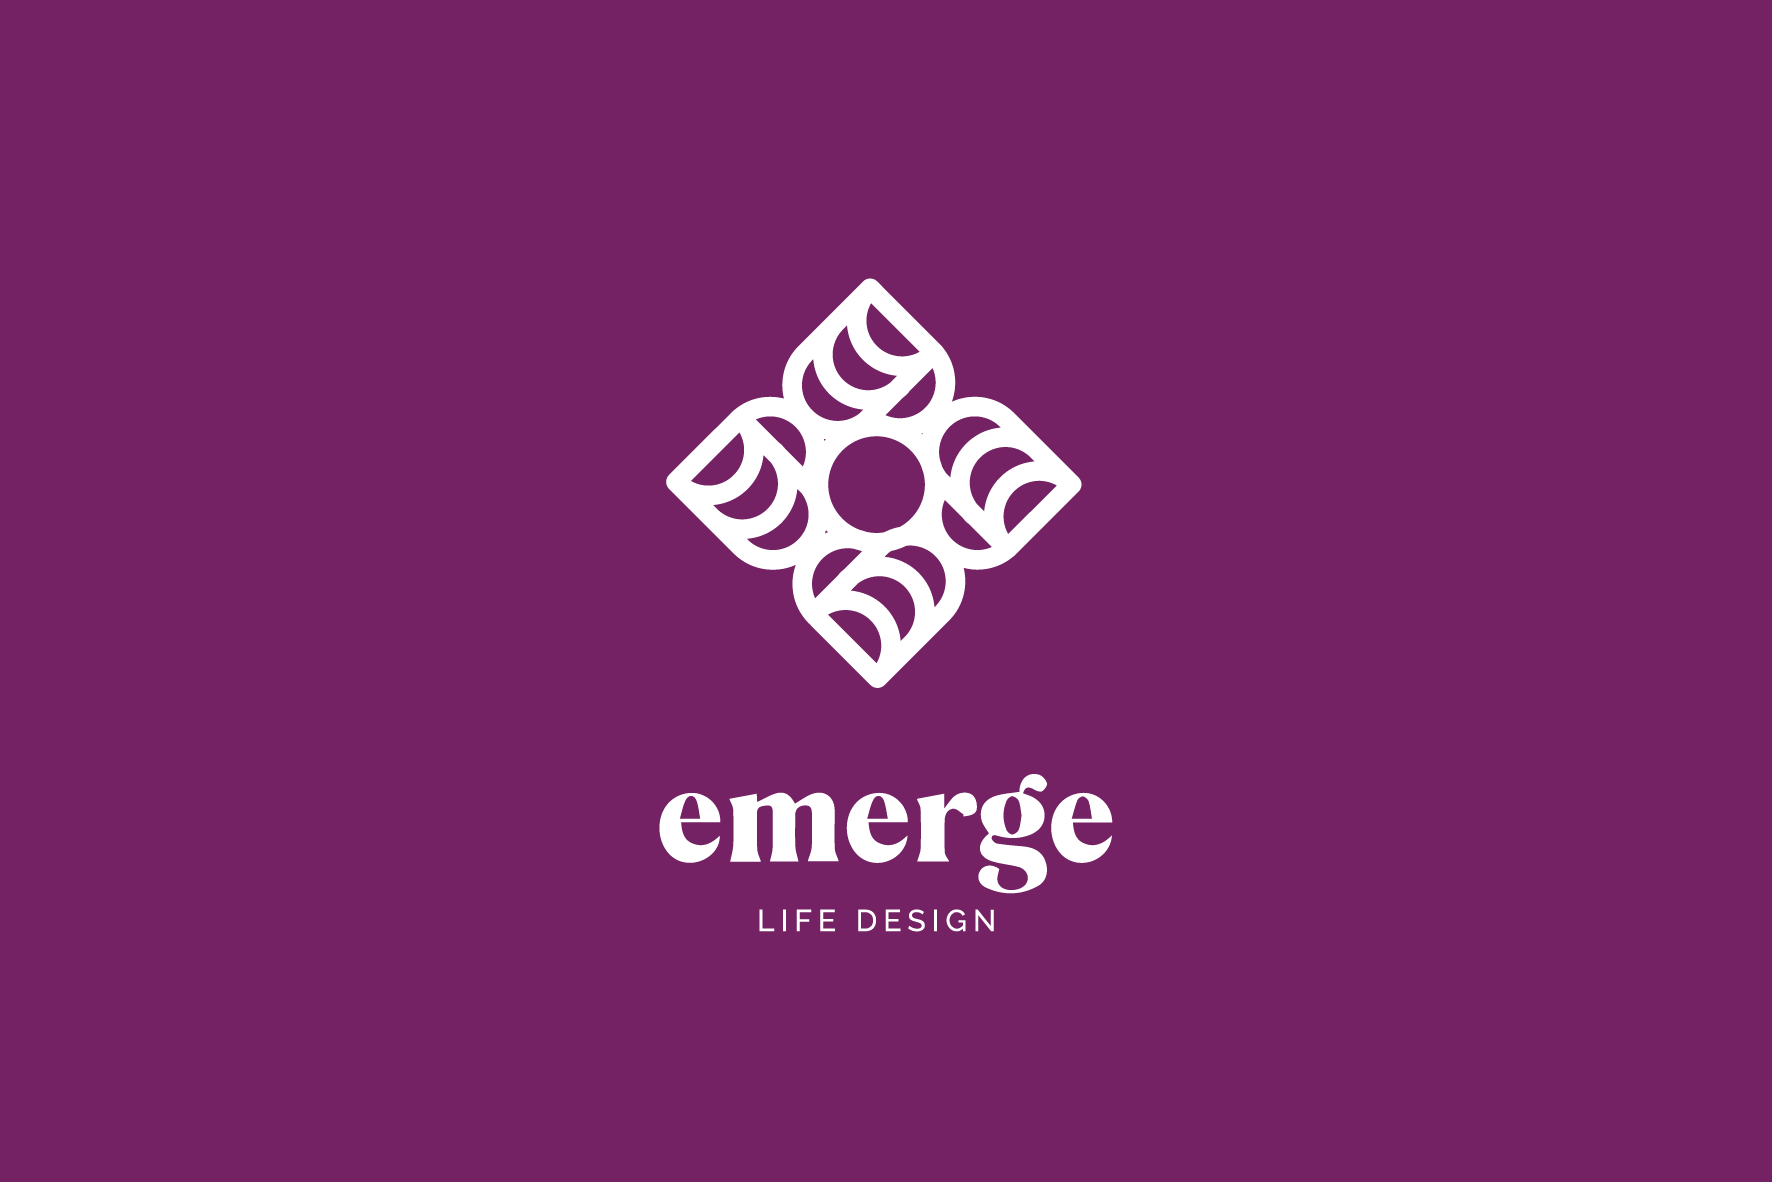 Emerge Life Design Logo